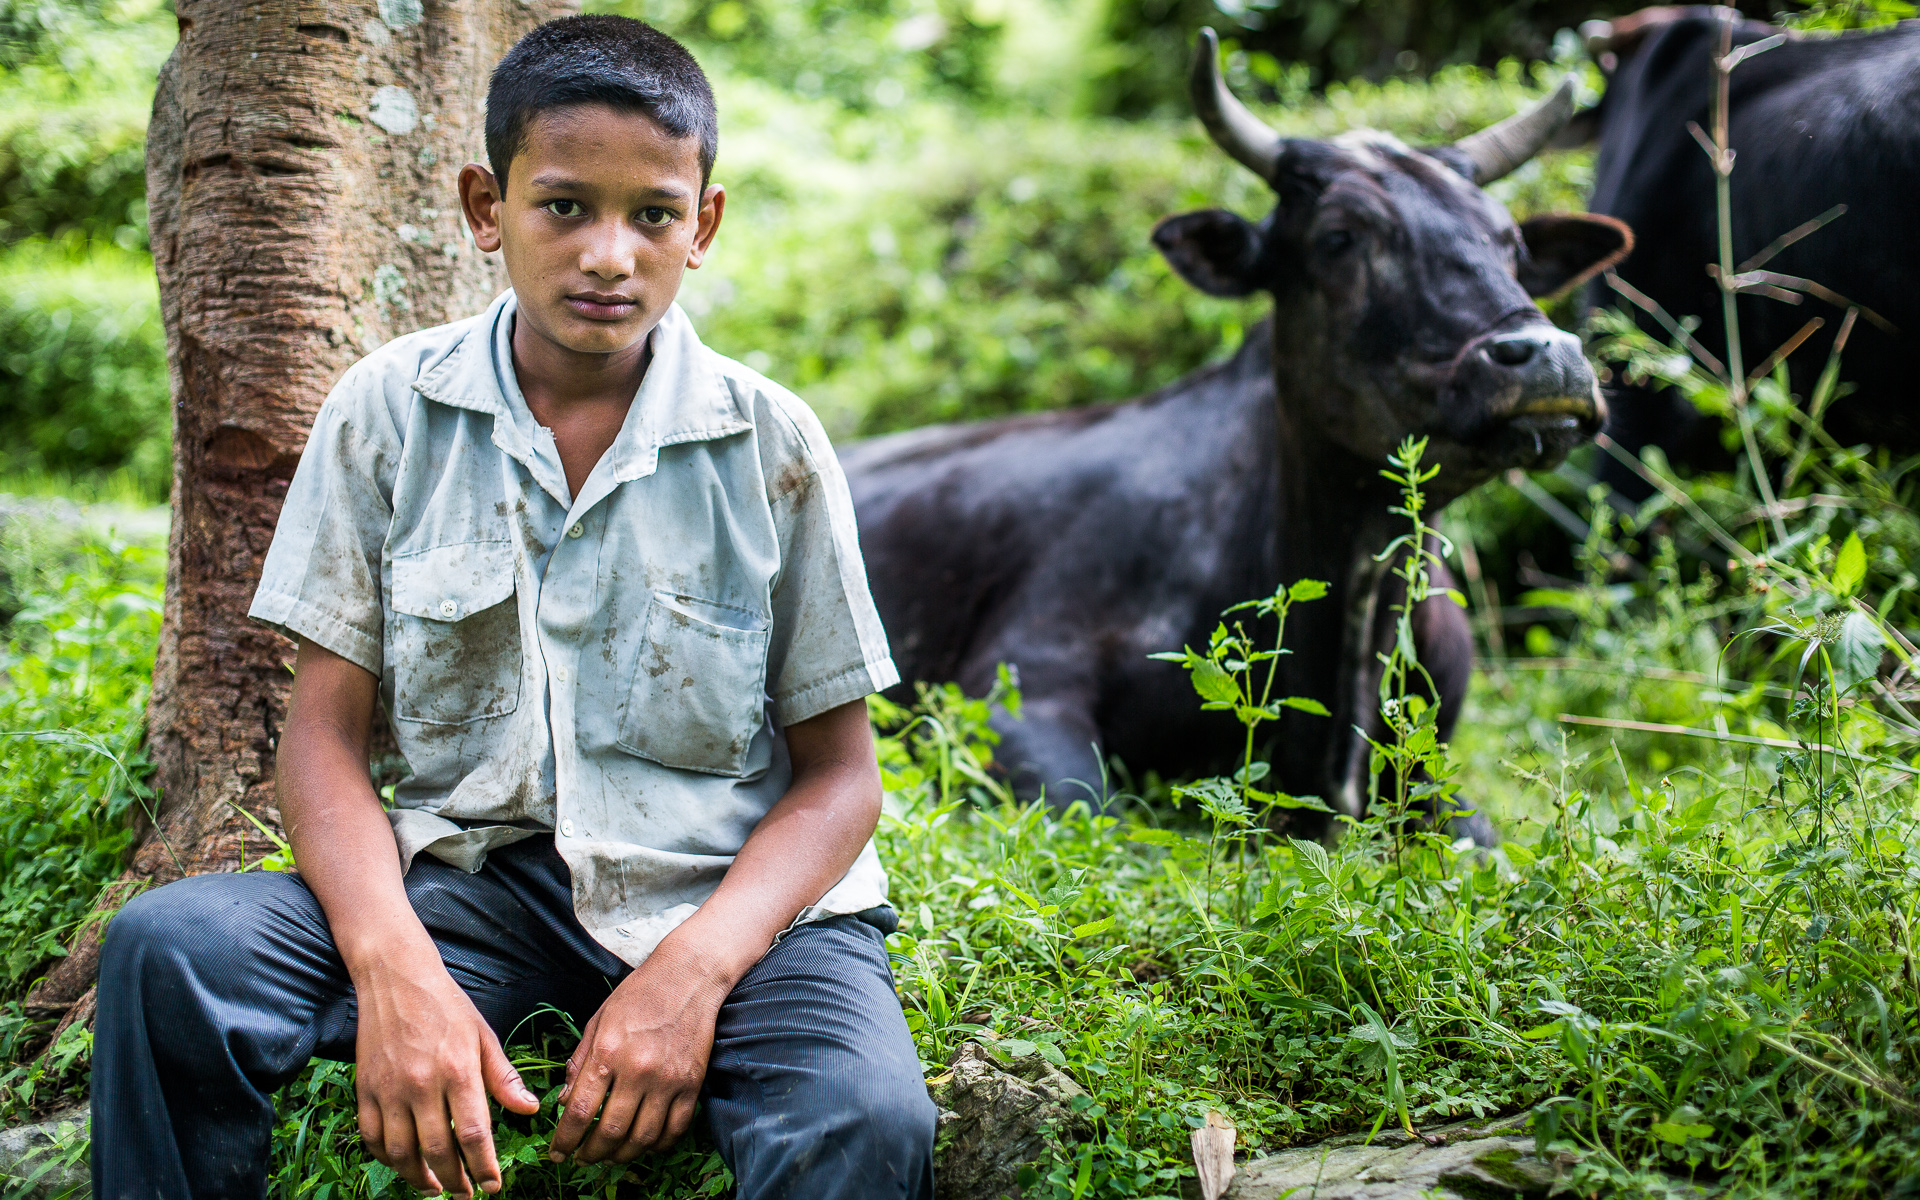 A boy proudly posing with his family's ox. This animal is considered very valuable because it can do an incredible amount of work in the fields. At the end of its working life, it will provide the family with a lot of meat too.